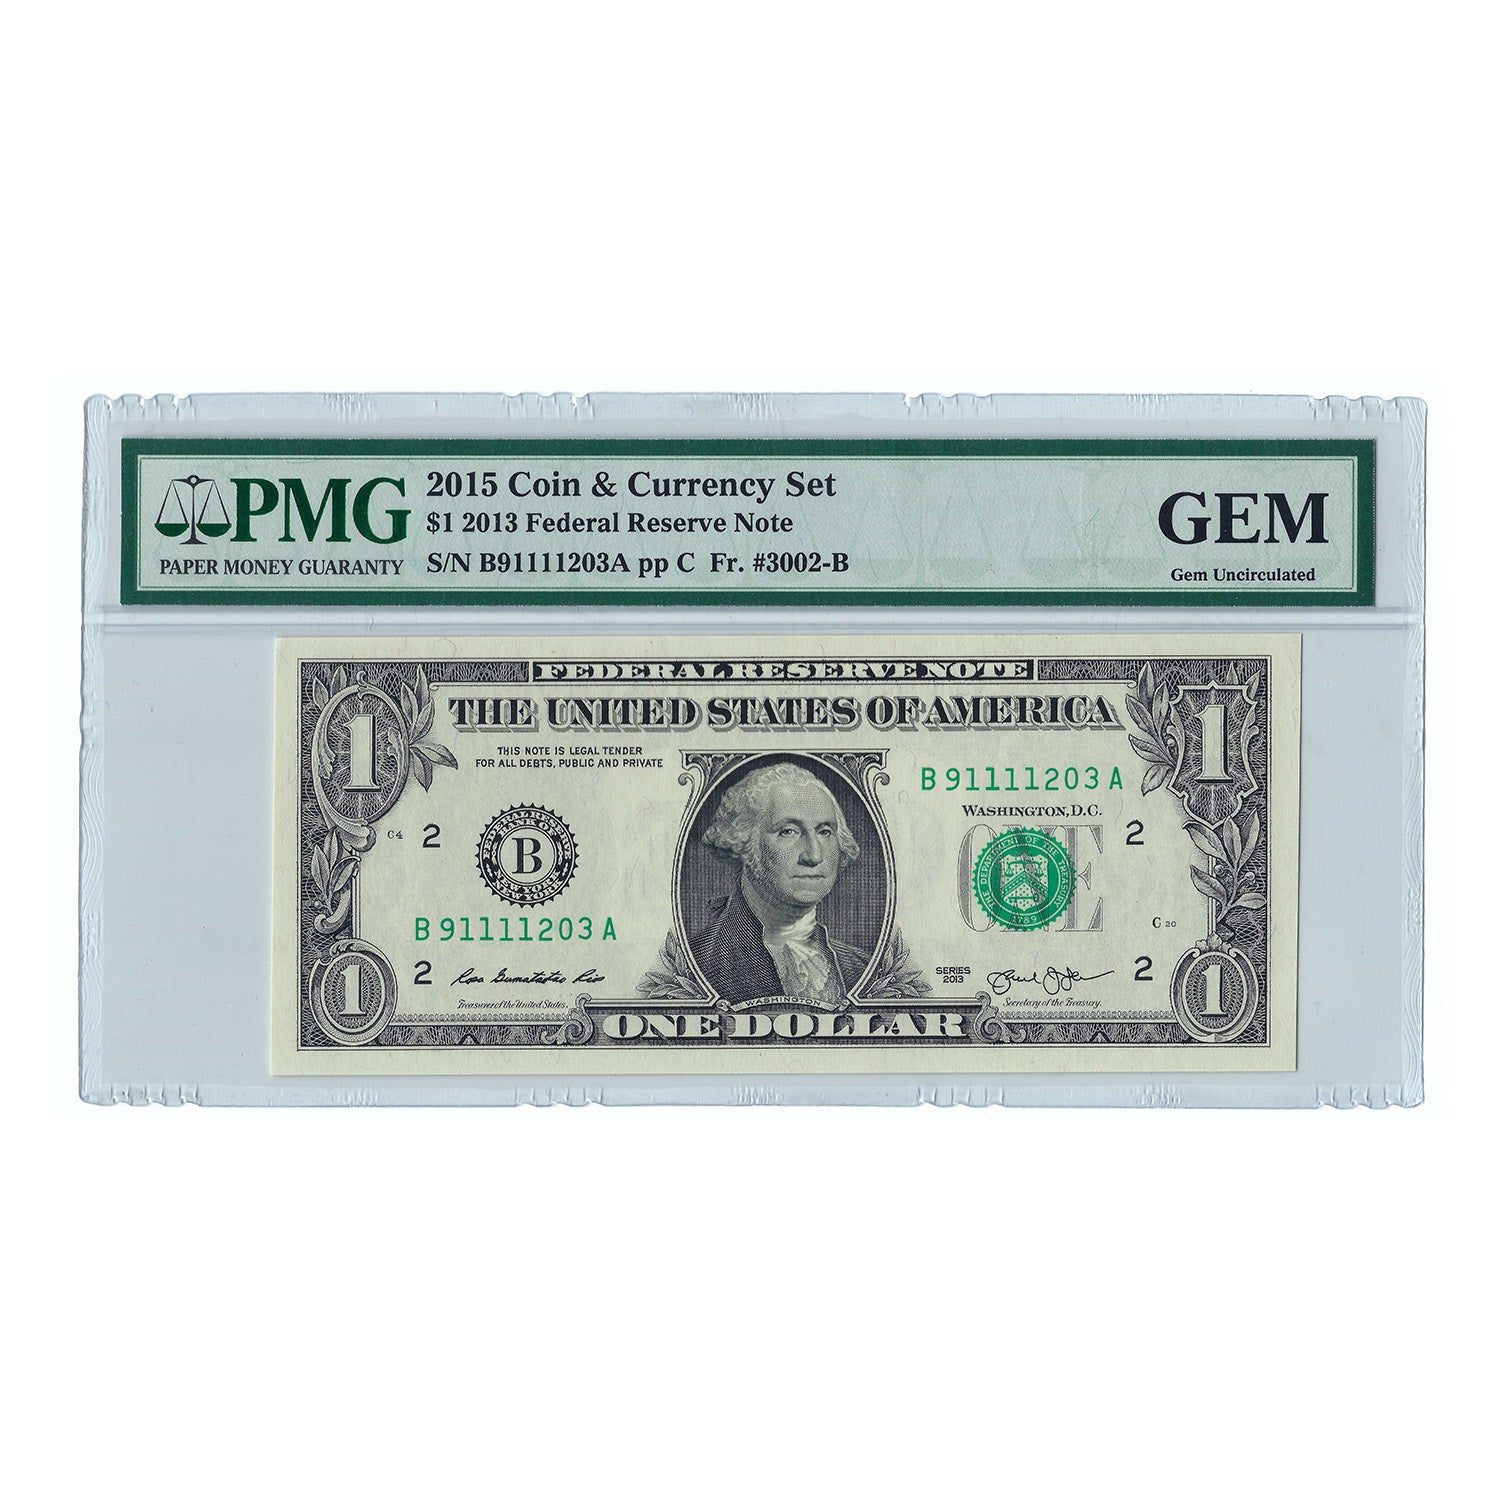 2013 $1 Coin & Currency Set Federal Reserve Note, FR3002B, PMG GEM